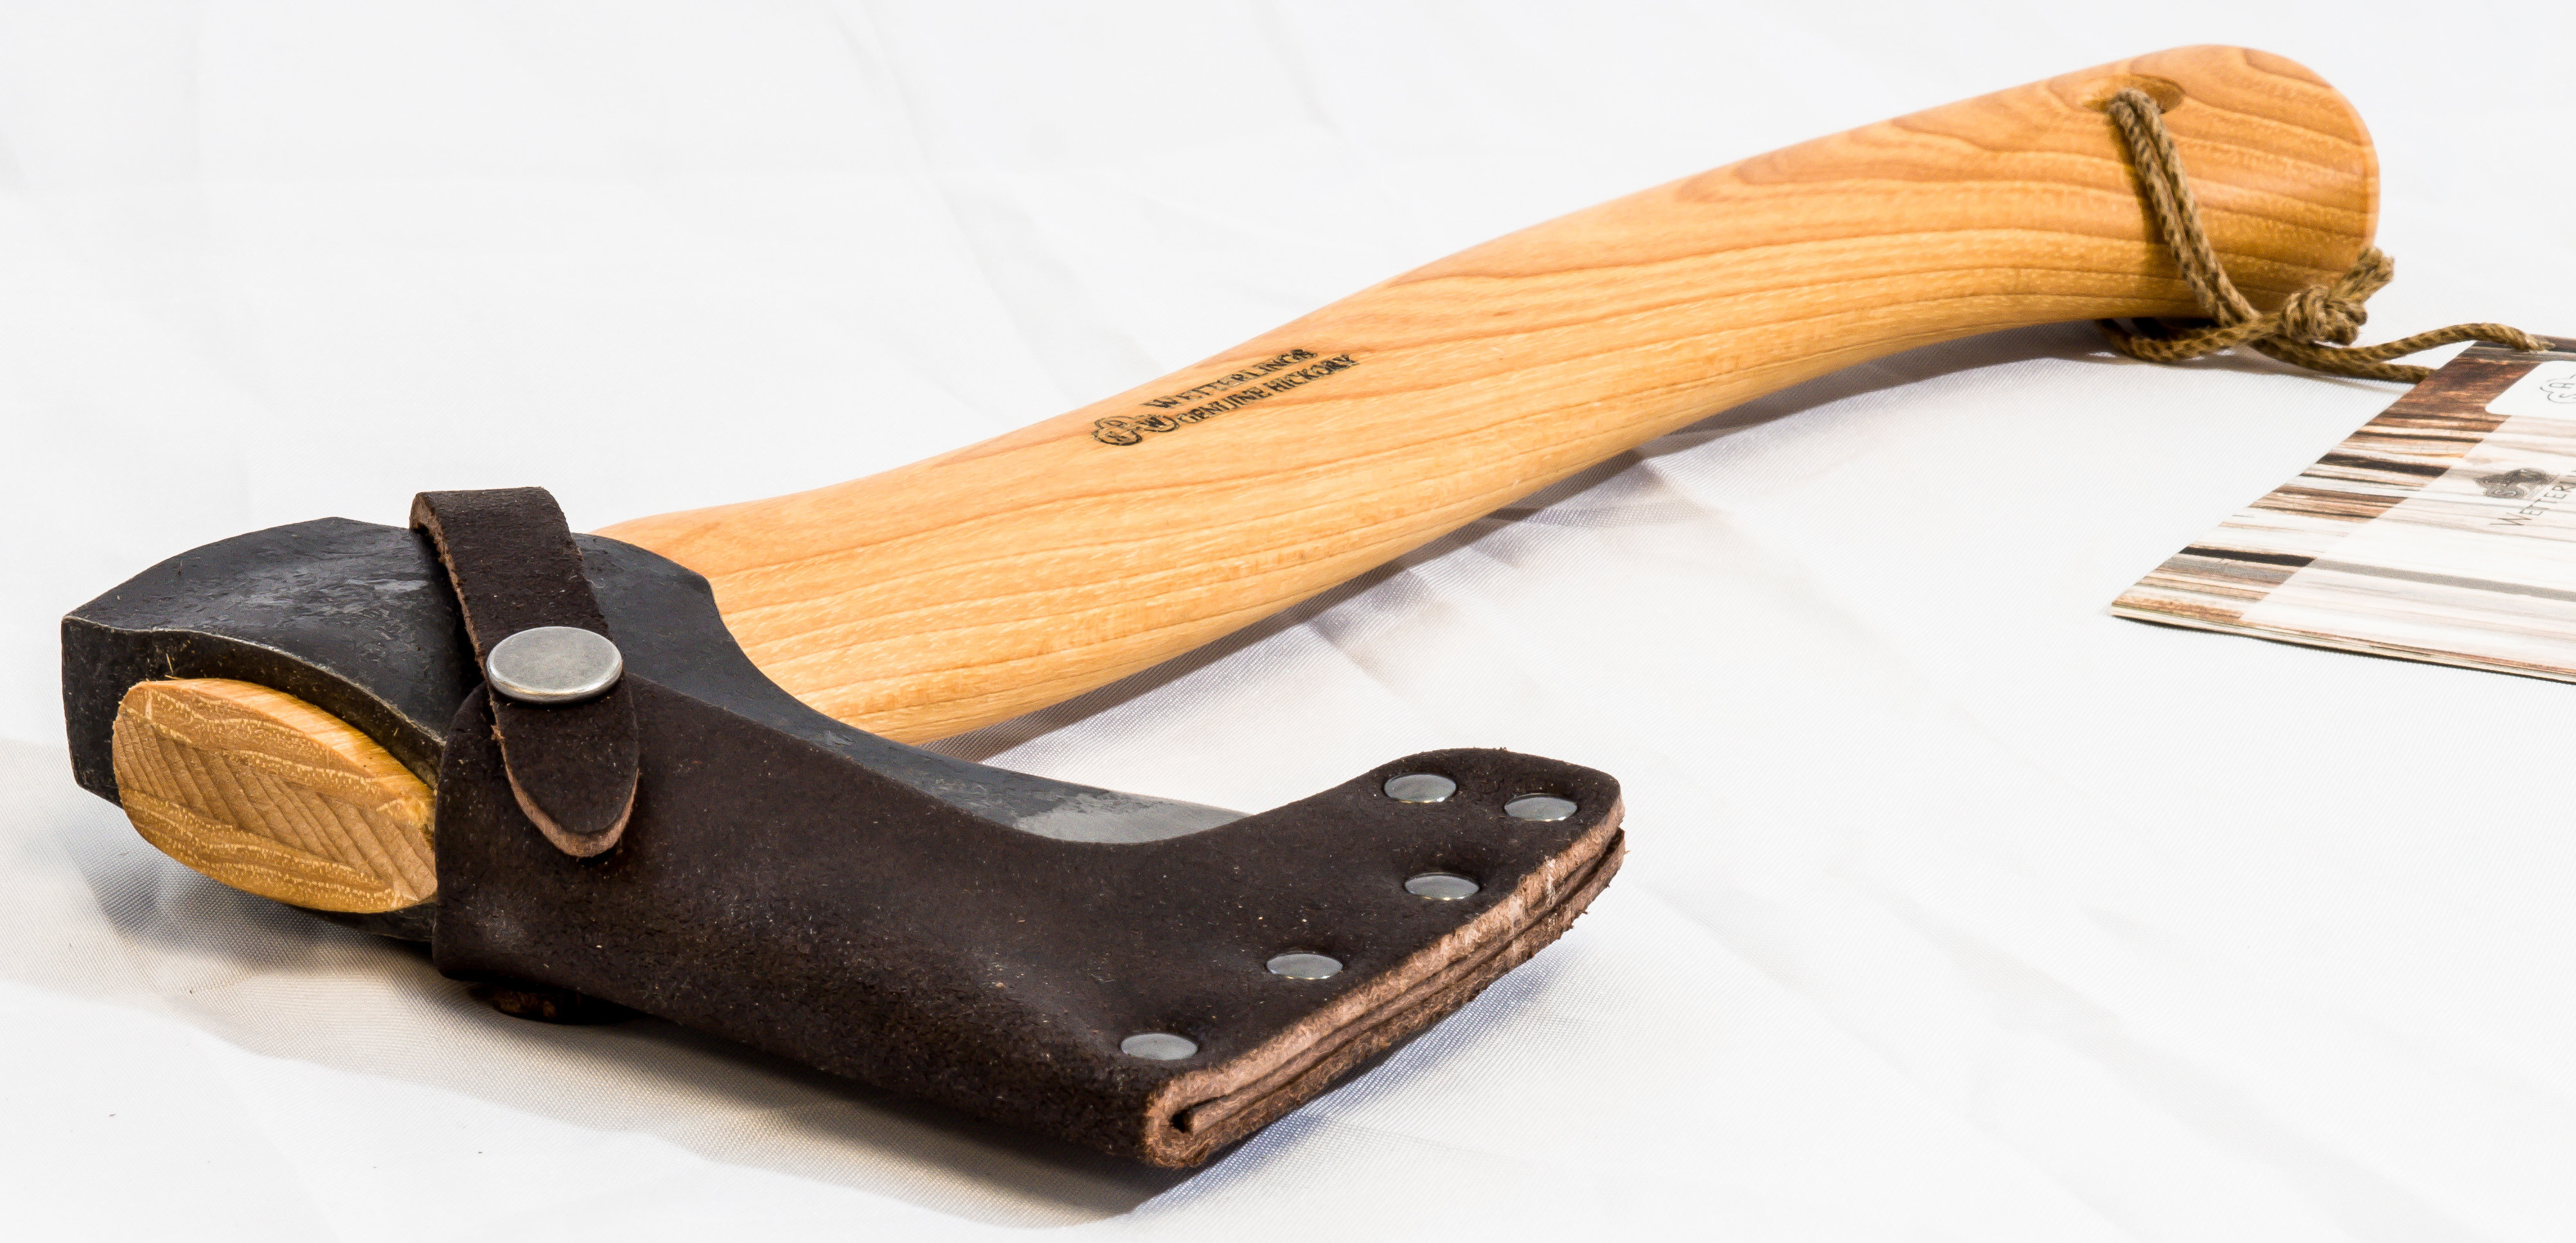 Wetterlings Wildlife Hatchet Axe (Camping) with Sheath HJ-TUR-13H